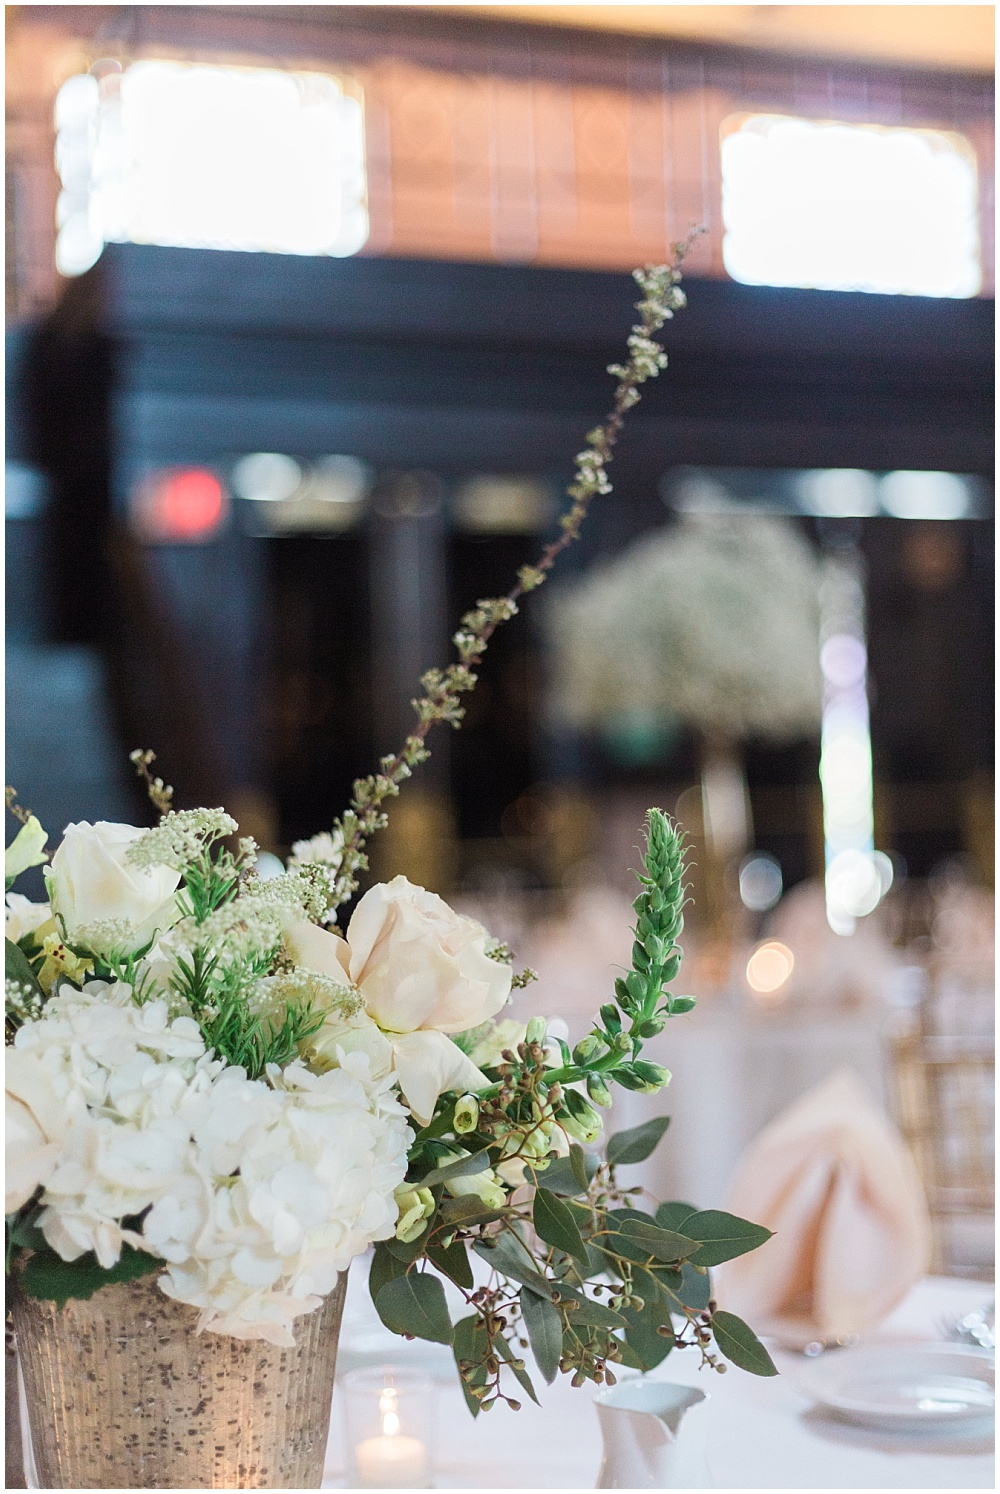 Blush, white and green wedding centerpieces | Downtown Indianapolis Wedding by Gabrielle Cheikh Photography & Jessica Dum Wedding Coordination